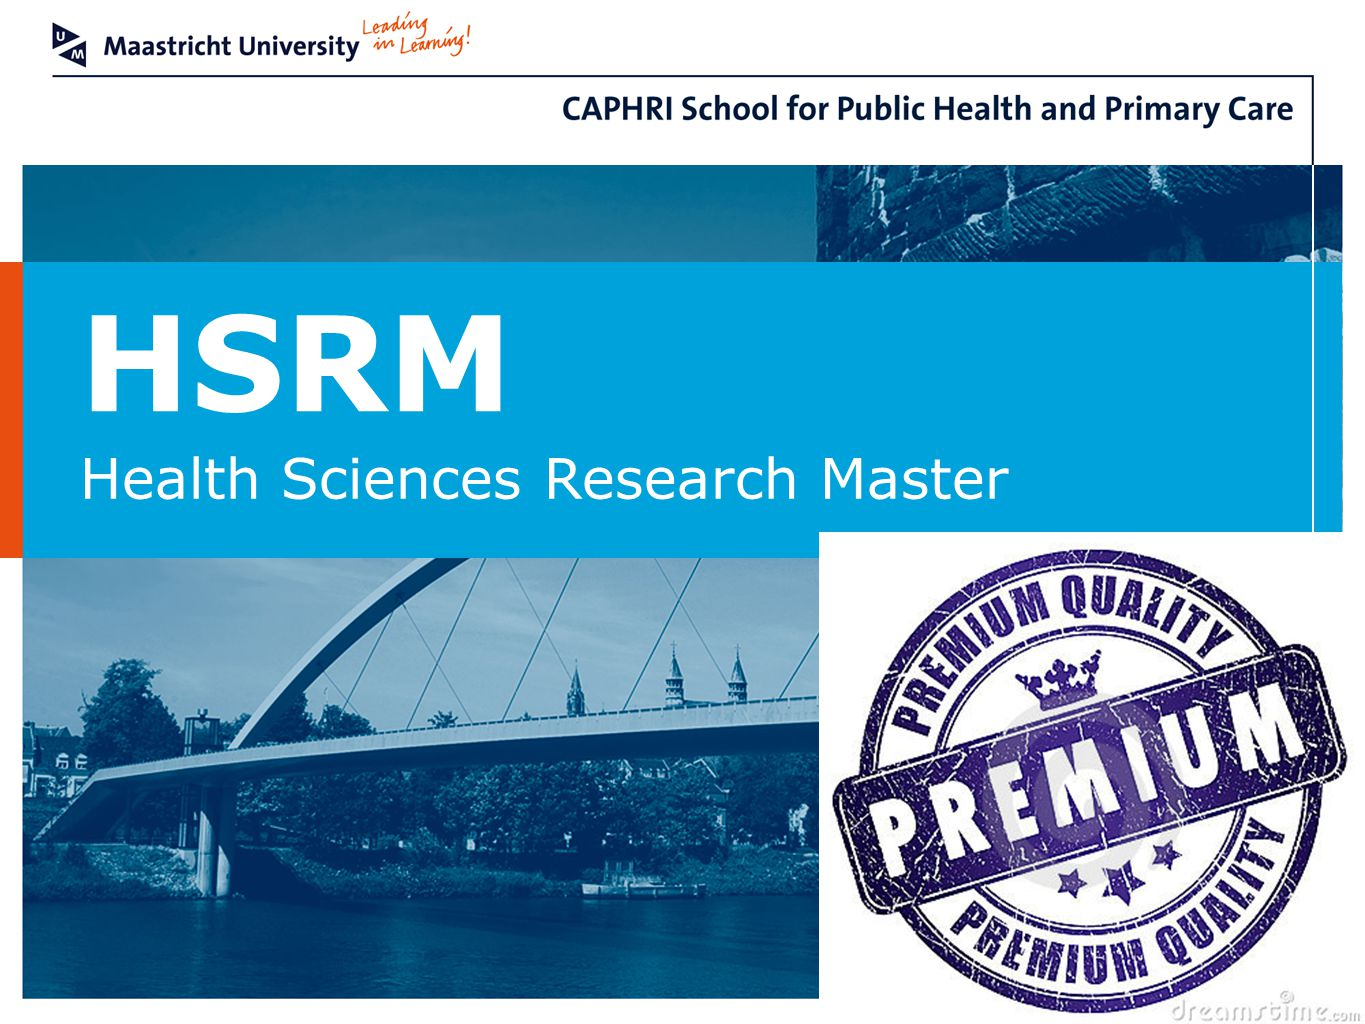 HSRM Health Sciences Research Master